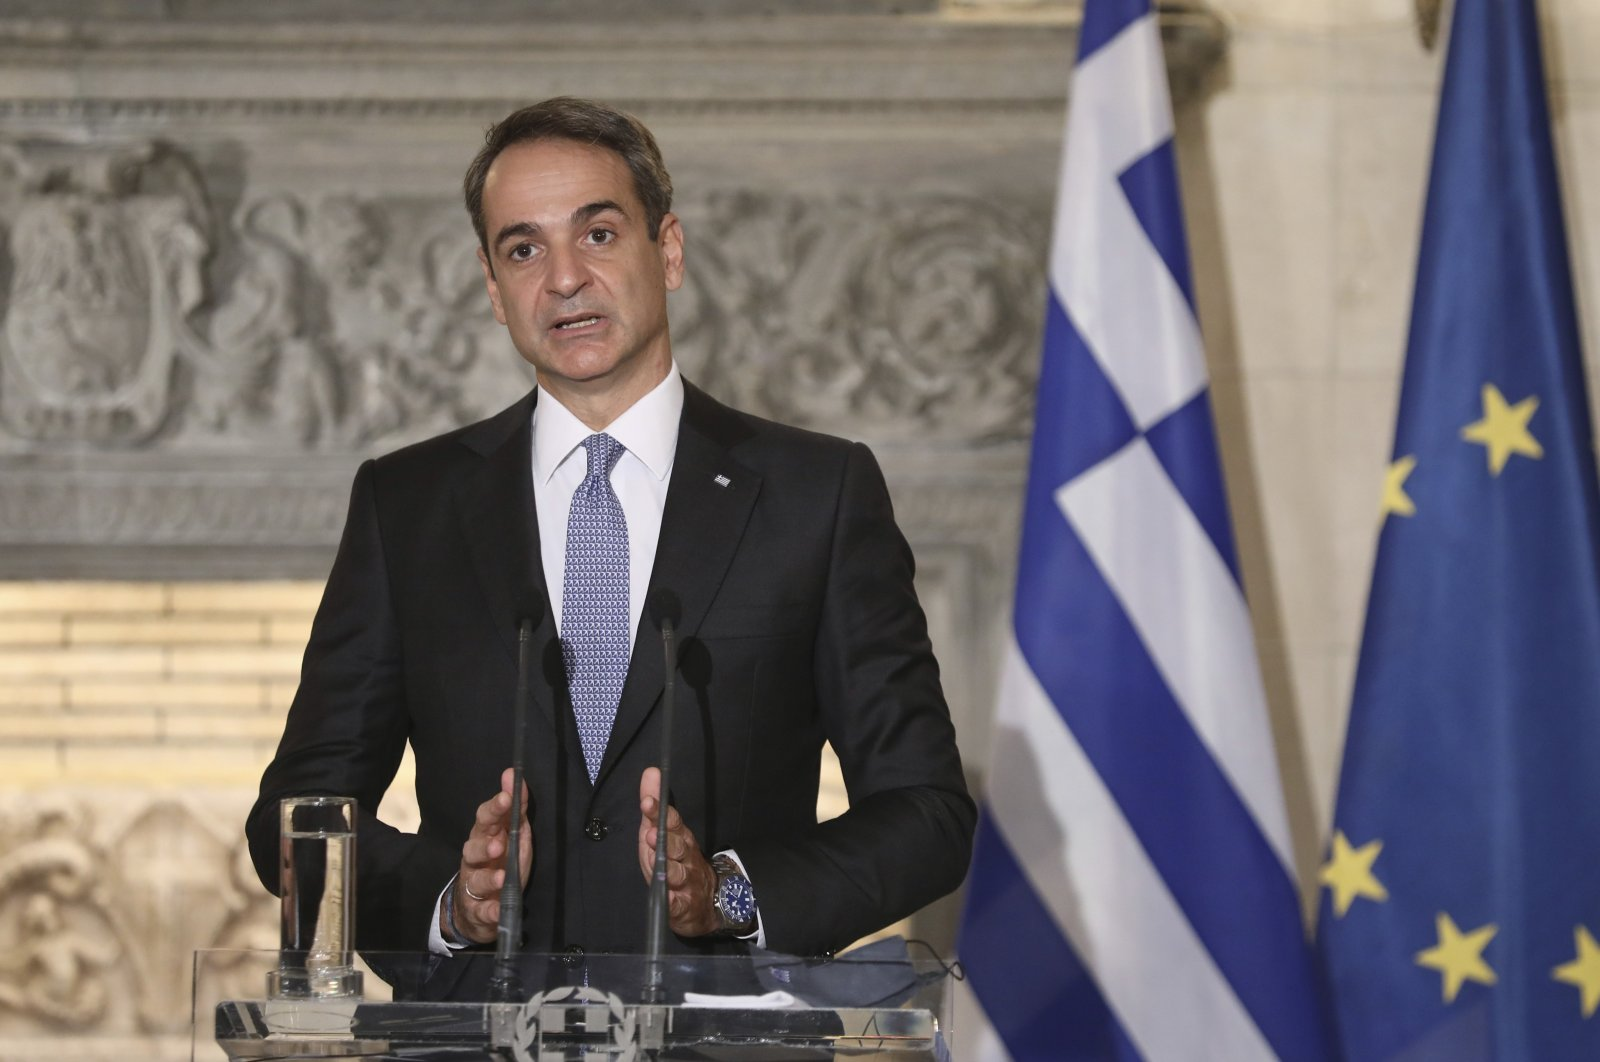 Greek Prime Minister Kyriakos Mitsotakis speaks during a joint news conference with Egyptian President Abdel Fattah al-Sissi at Maximos Mansion in Athens, Nov. 11, 2020. (AP File Photo)